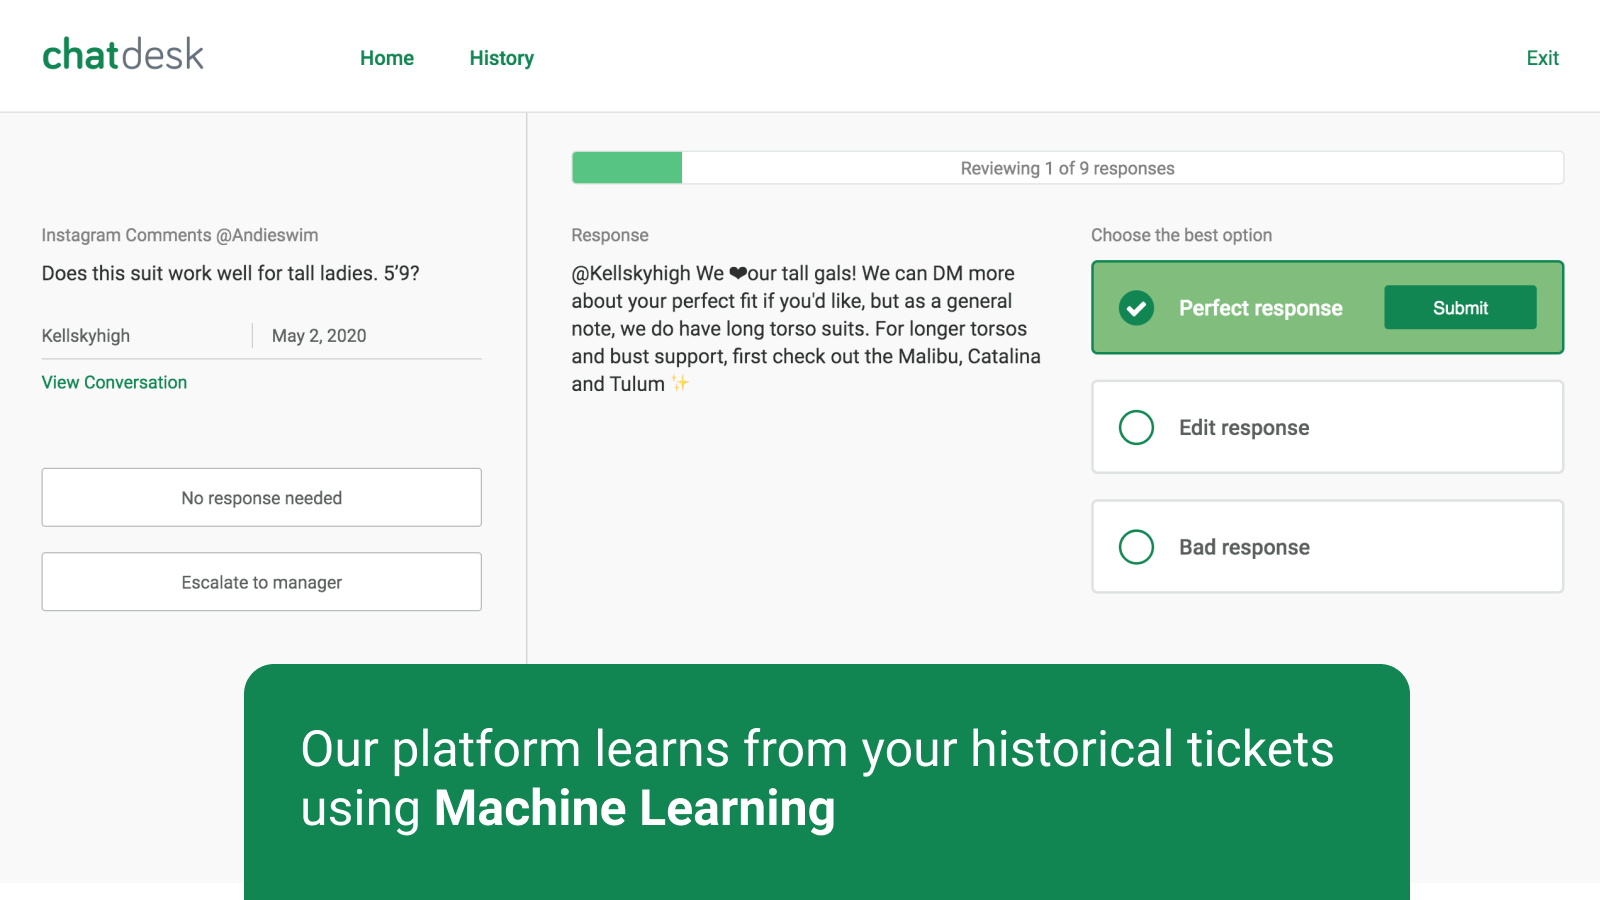 Our platform learns form your historical tickets